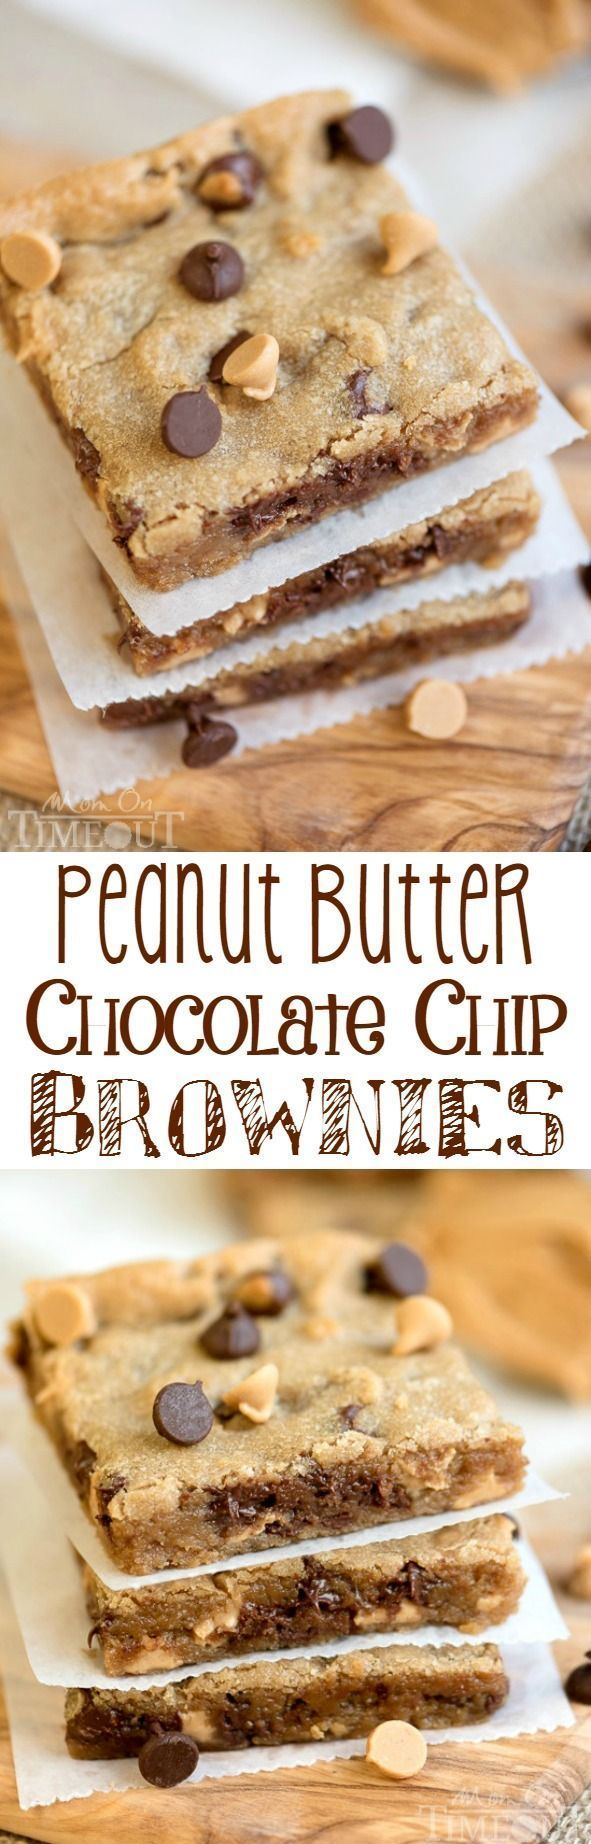 Perfectly moist, decadent, and fudgy, these sinful…